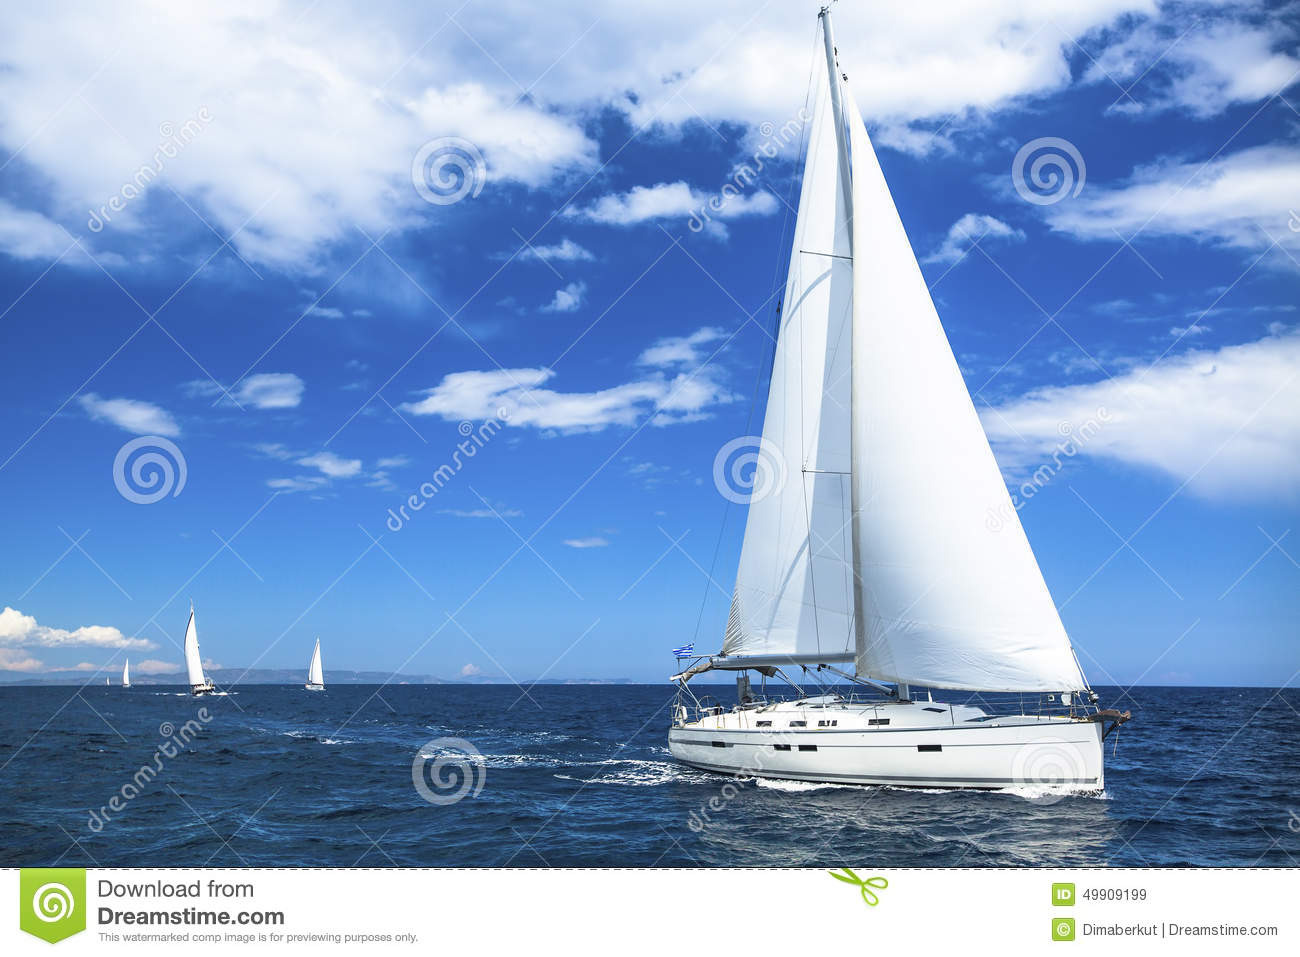 Sailing boat yacht or sail regatta race on blue water Sea. Sport.